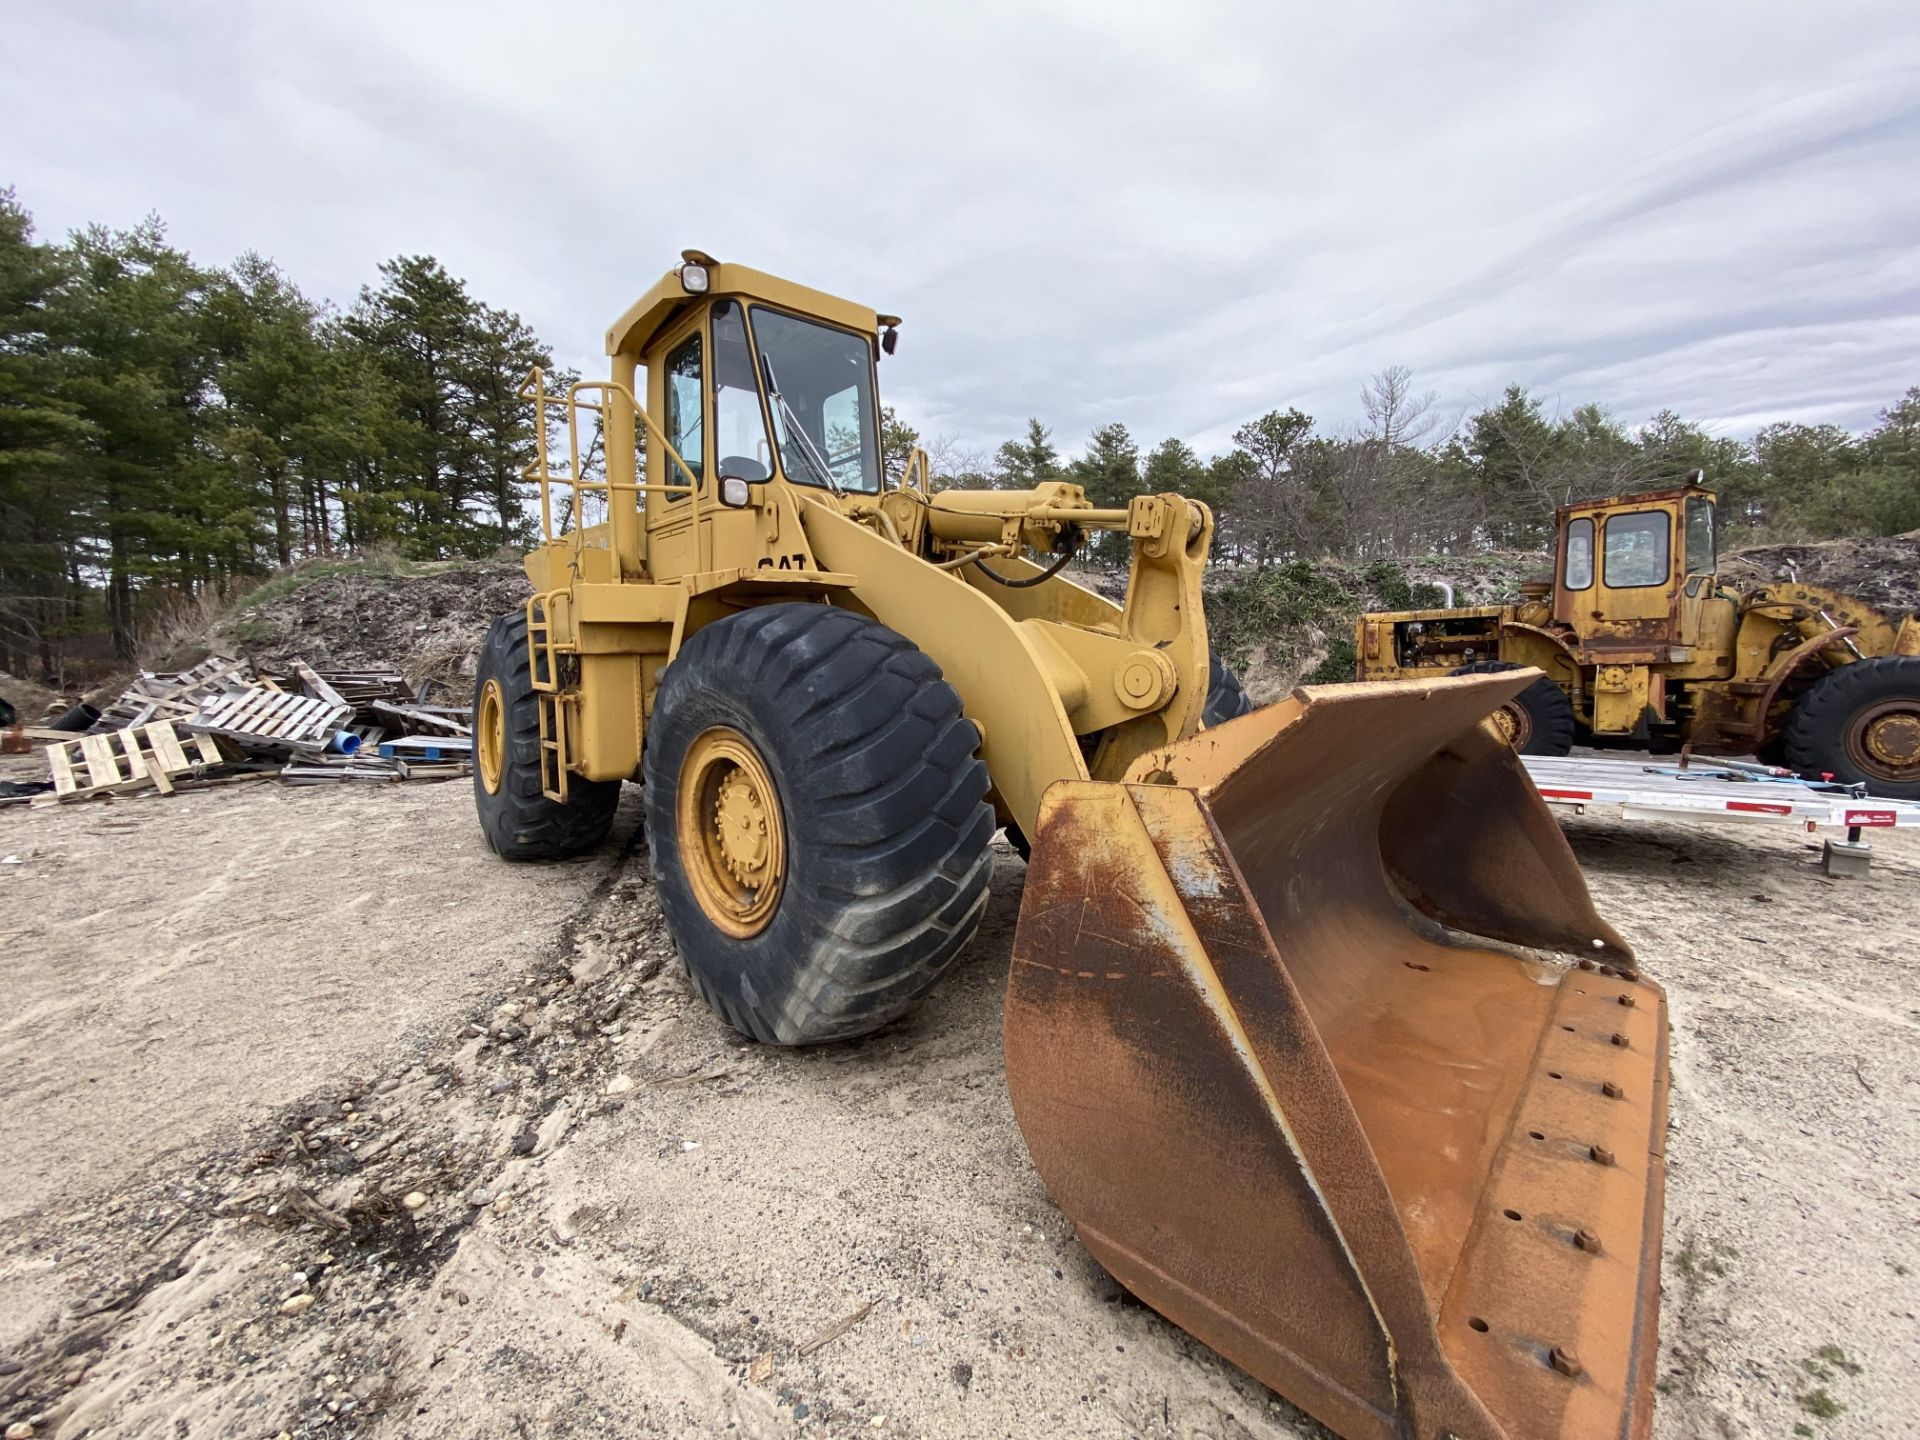 1980 Caterpillar 966D Wheel Loader s/n 99Y02108, Meter Reads 4,664 Hours, Have Title - Image 18 of 23